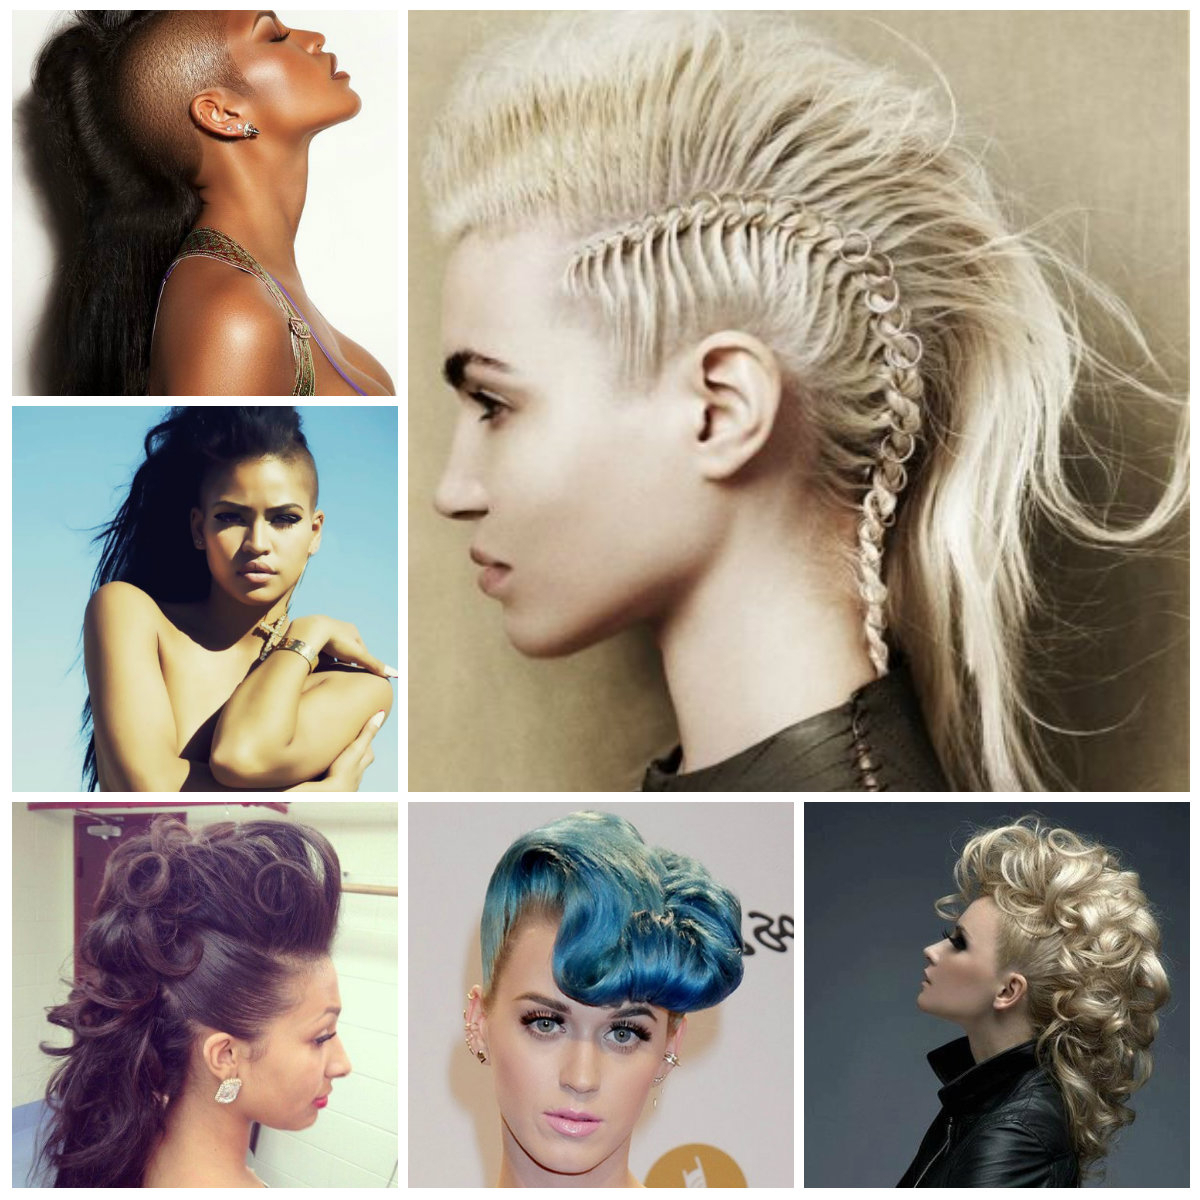 Mohawk Hairstyle For Long Hair – Hairstyleto With Regard To Trendy Medium Length Mohawk Hairstyles With Shaved Sides (View 11 of 20)